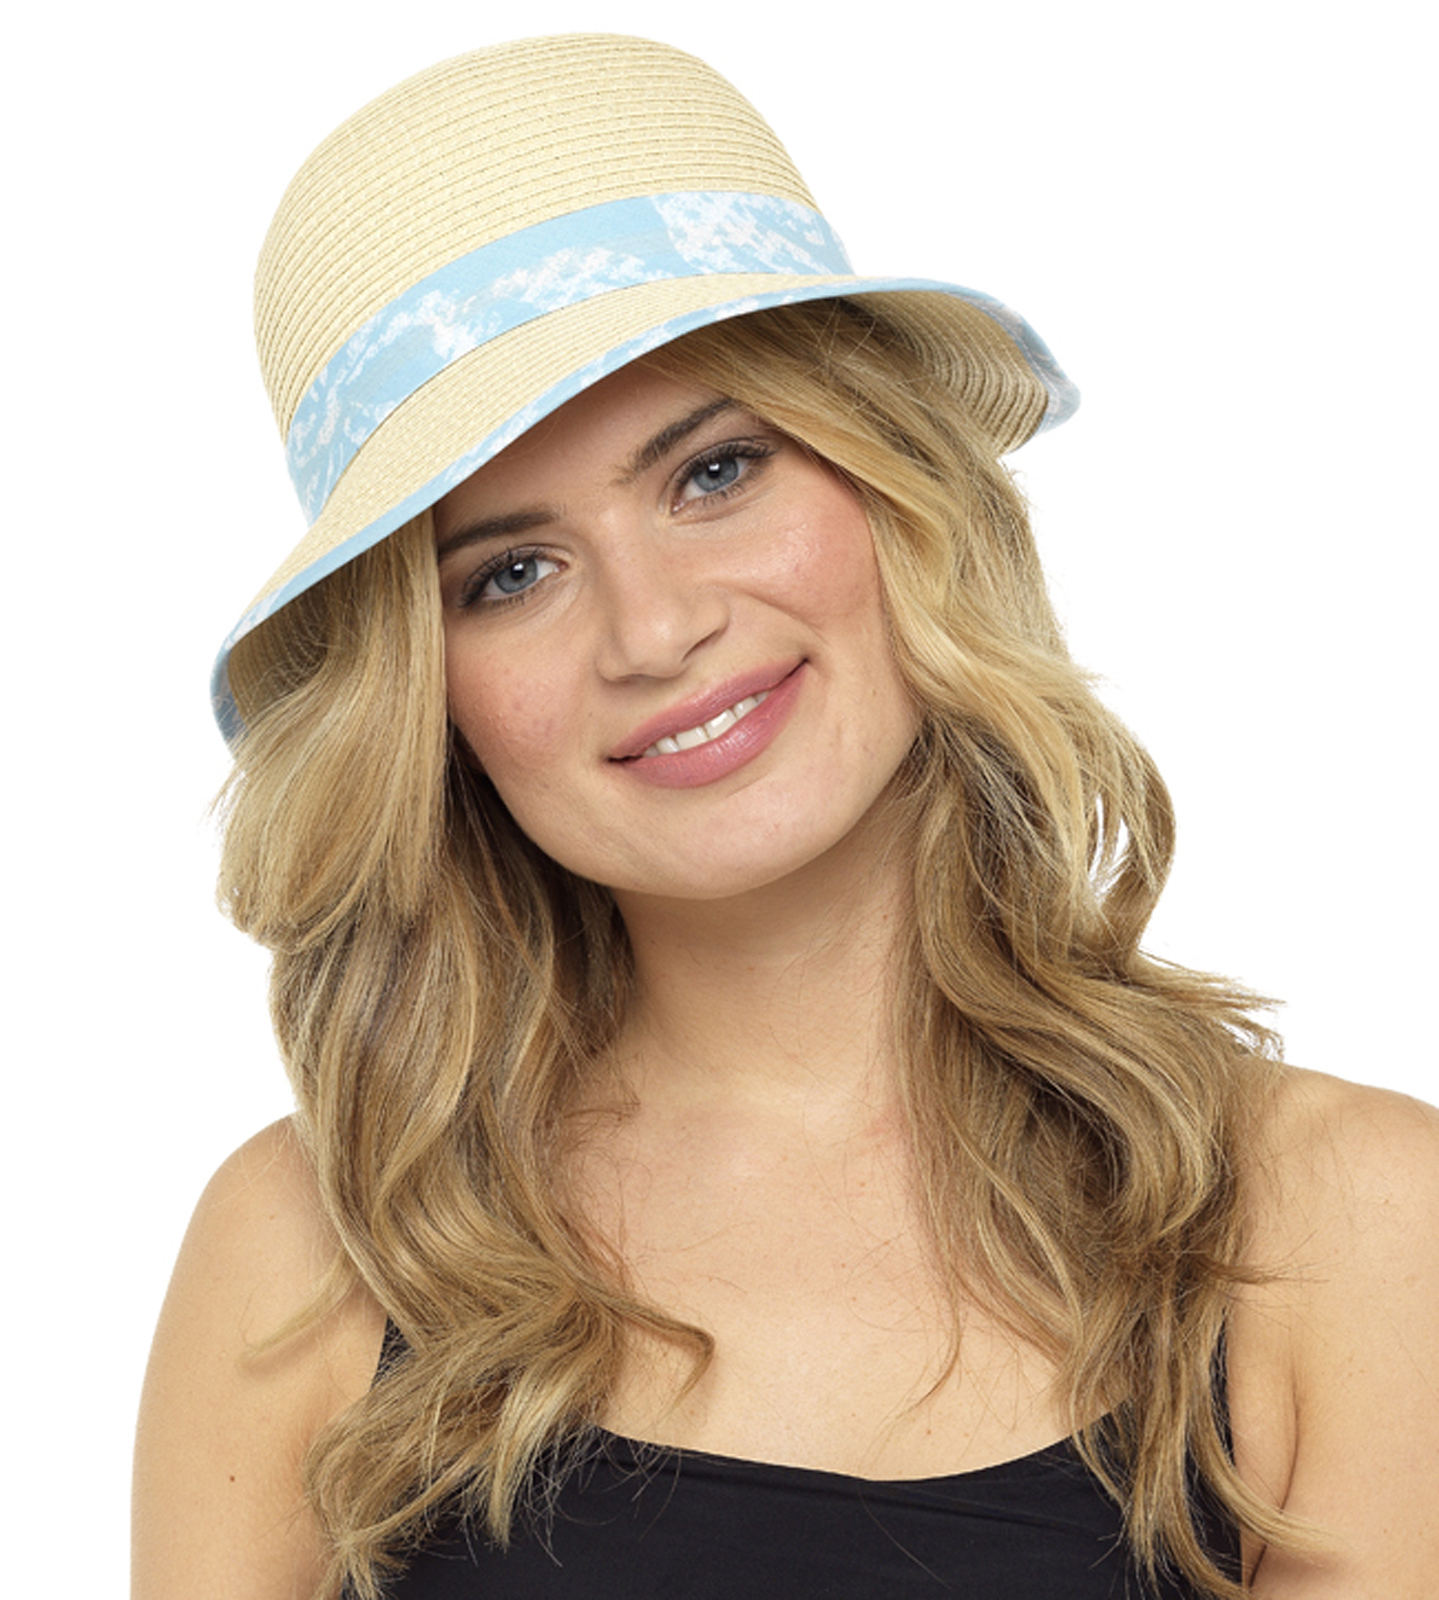 Ladies Girls Wide Brim Summer Sun Hat Packable /& Crushable with Scarf Trim